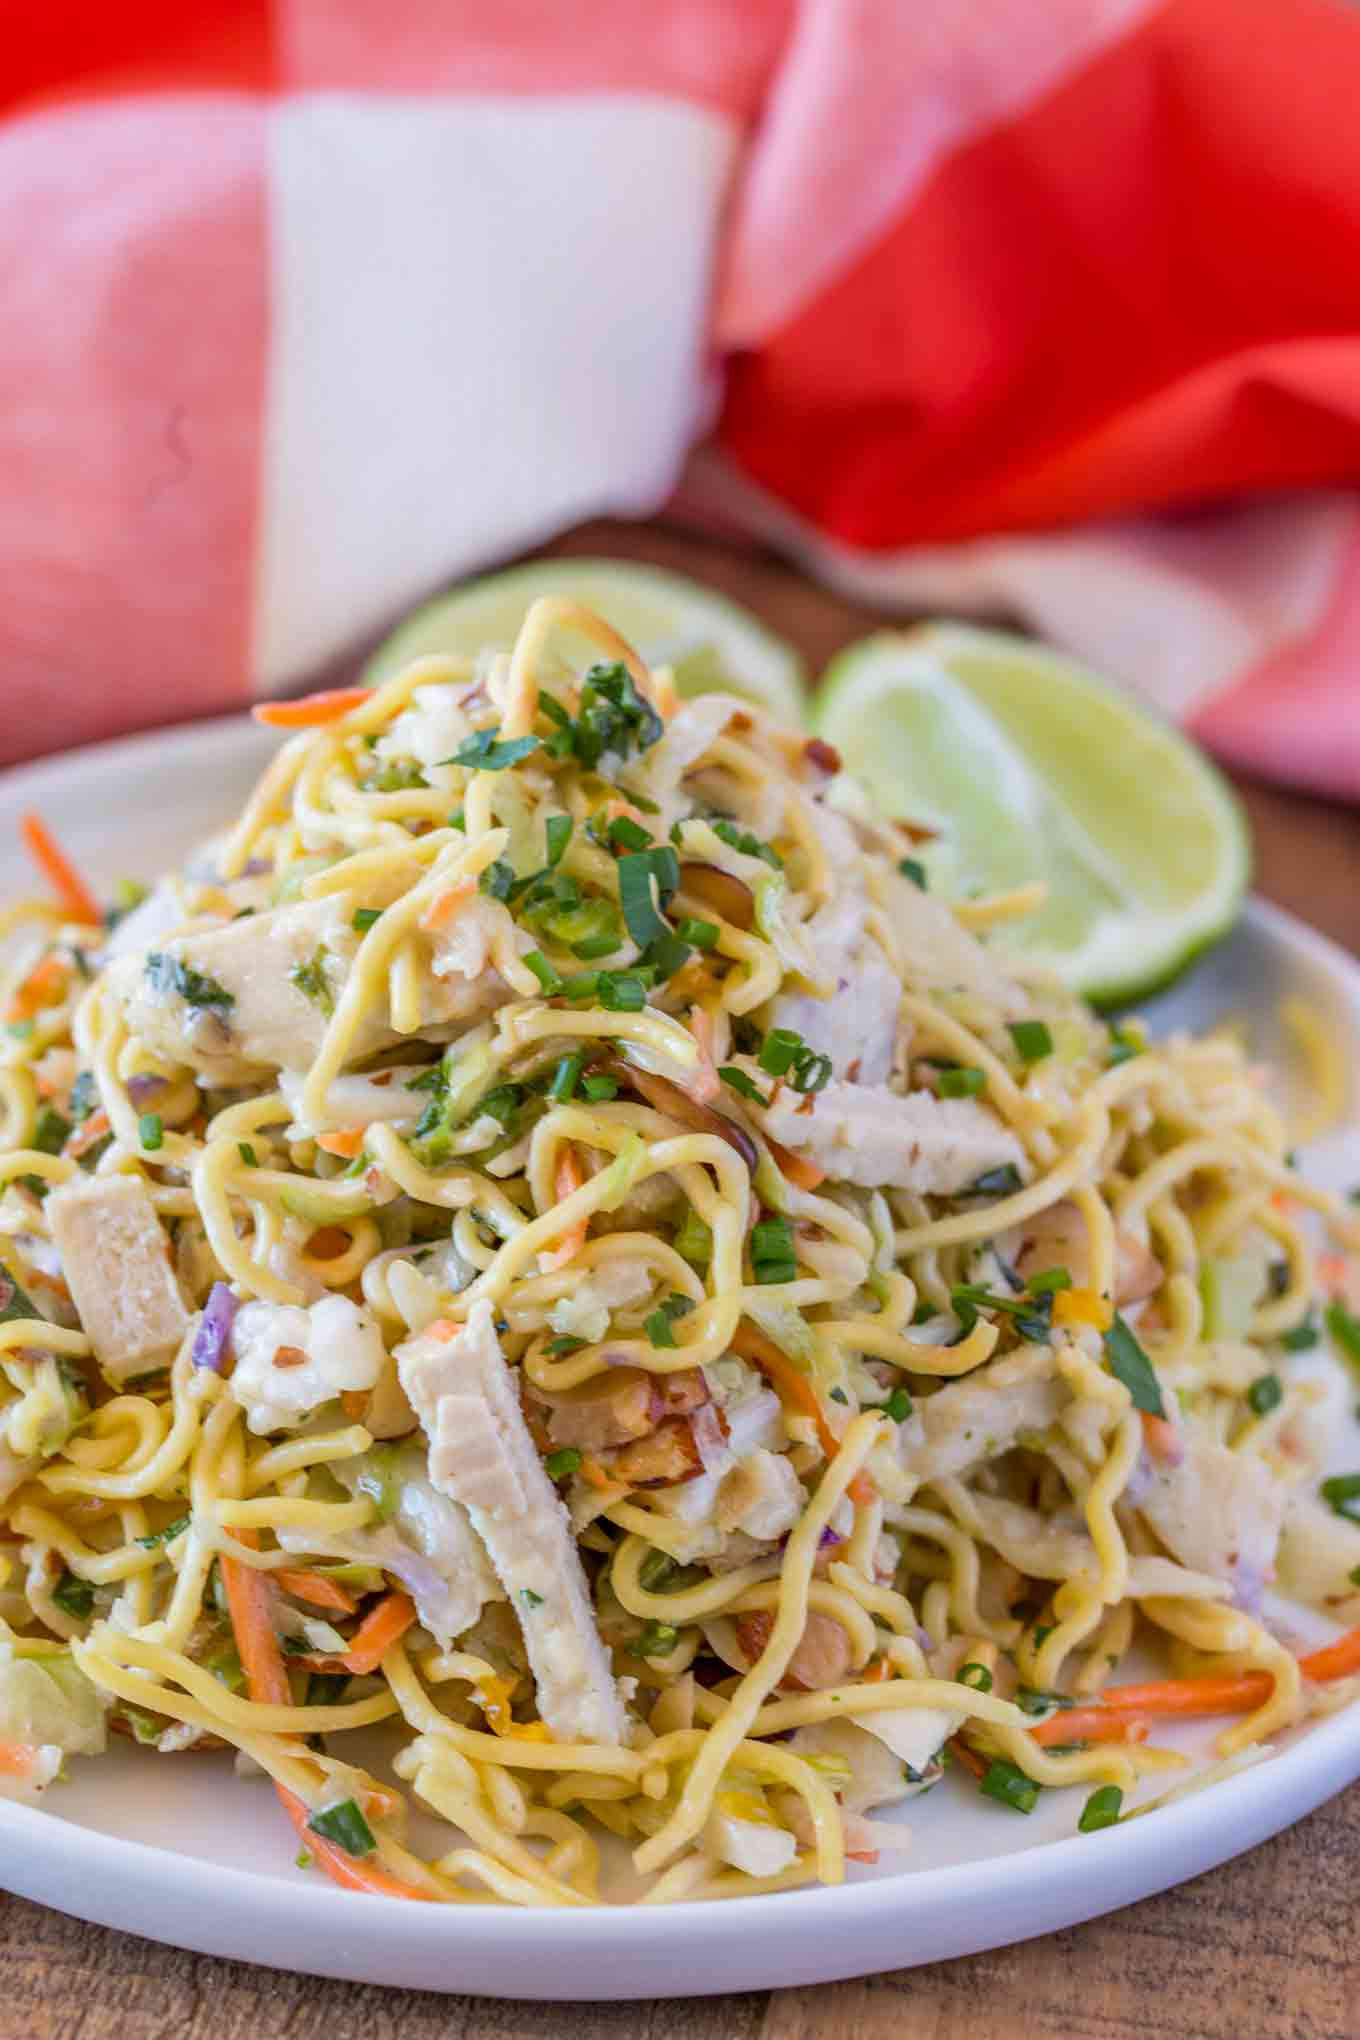 Ramen Salad with Chicken and almonds on plate